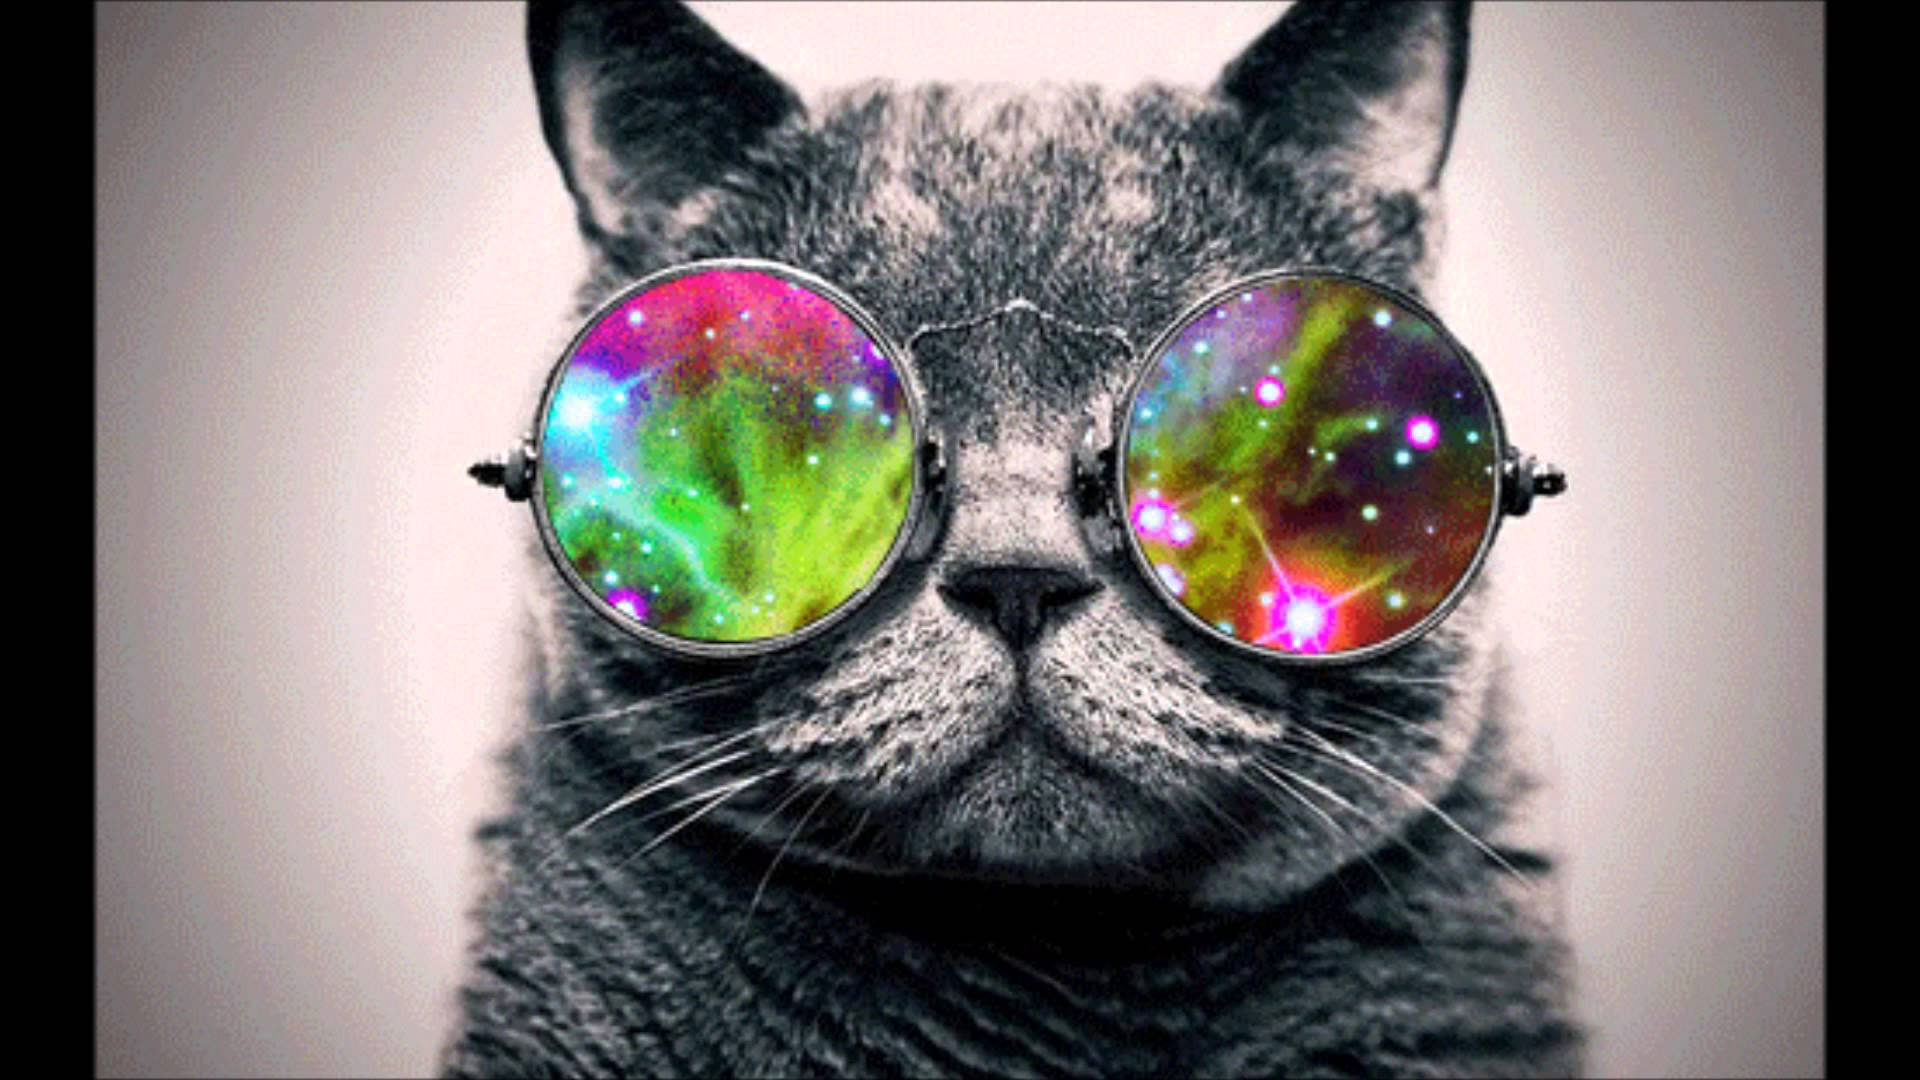 Cat with Glasses Wallpaper 1920x1080